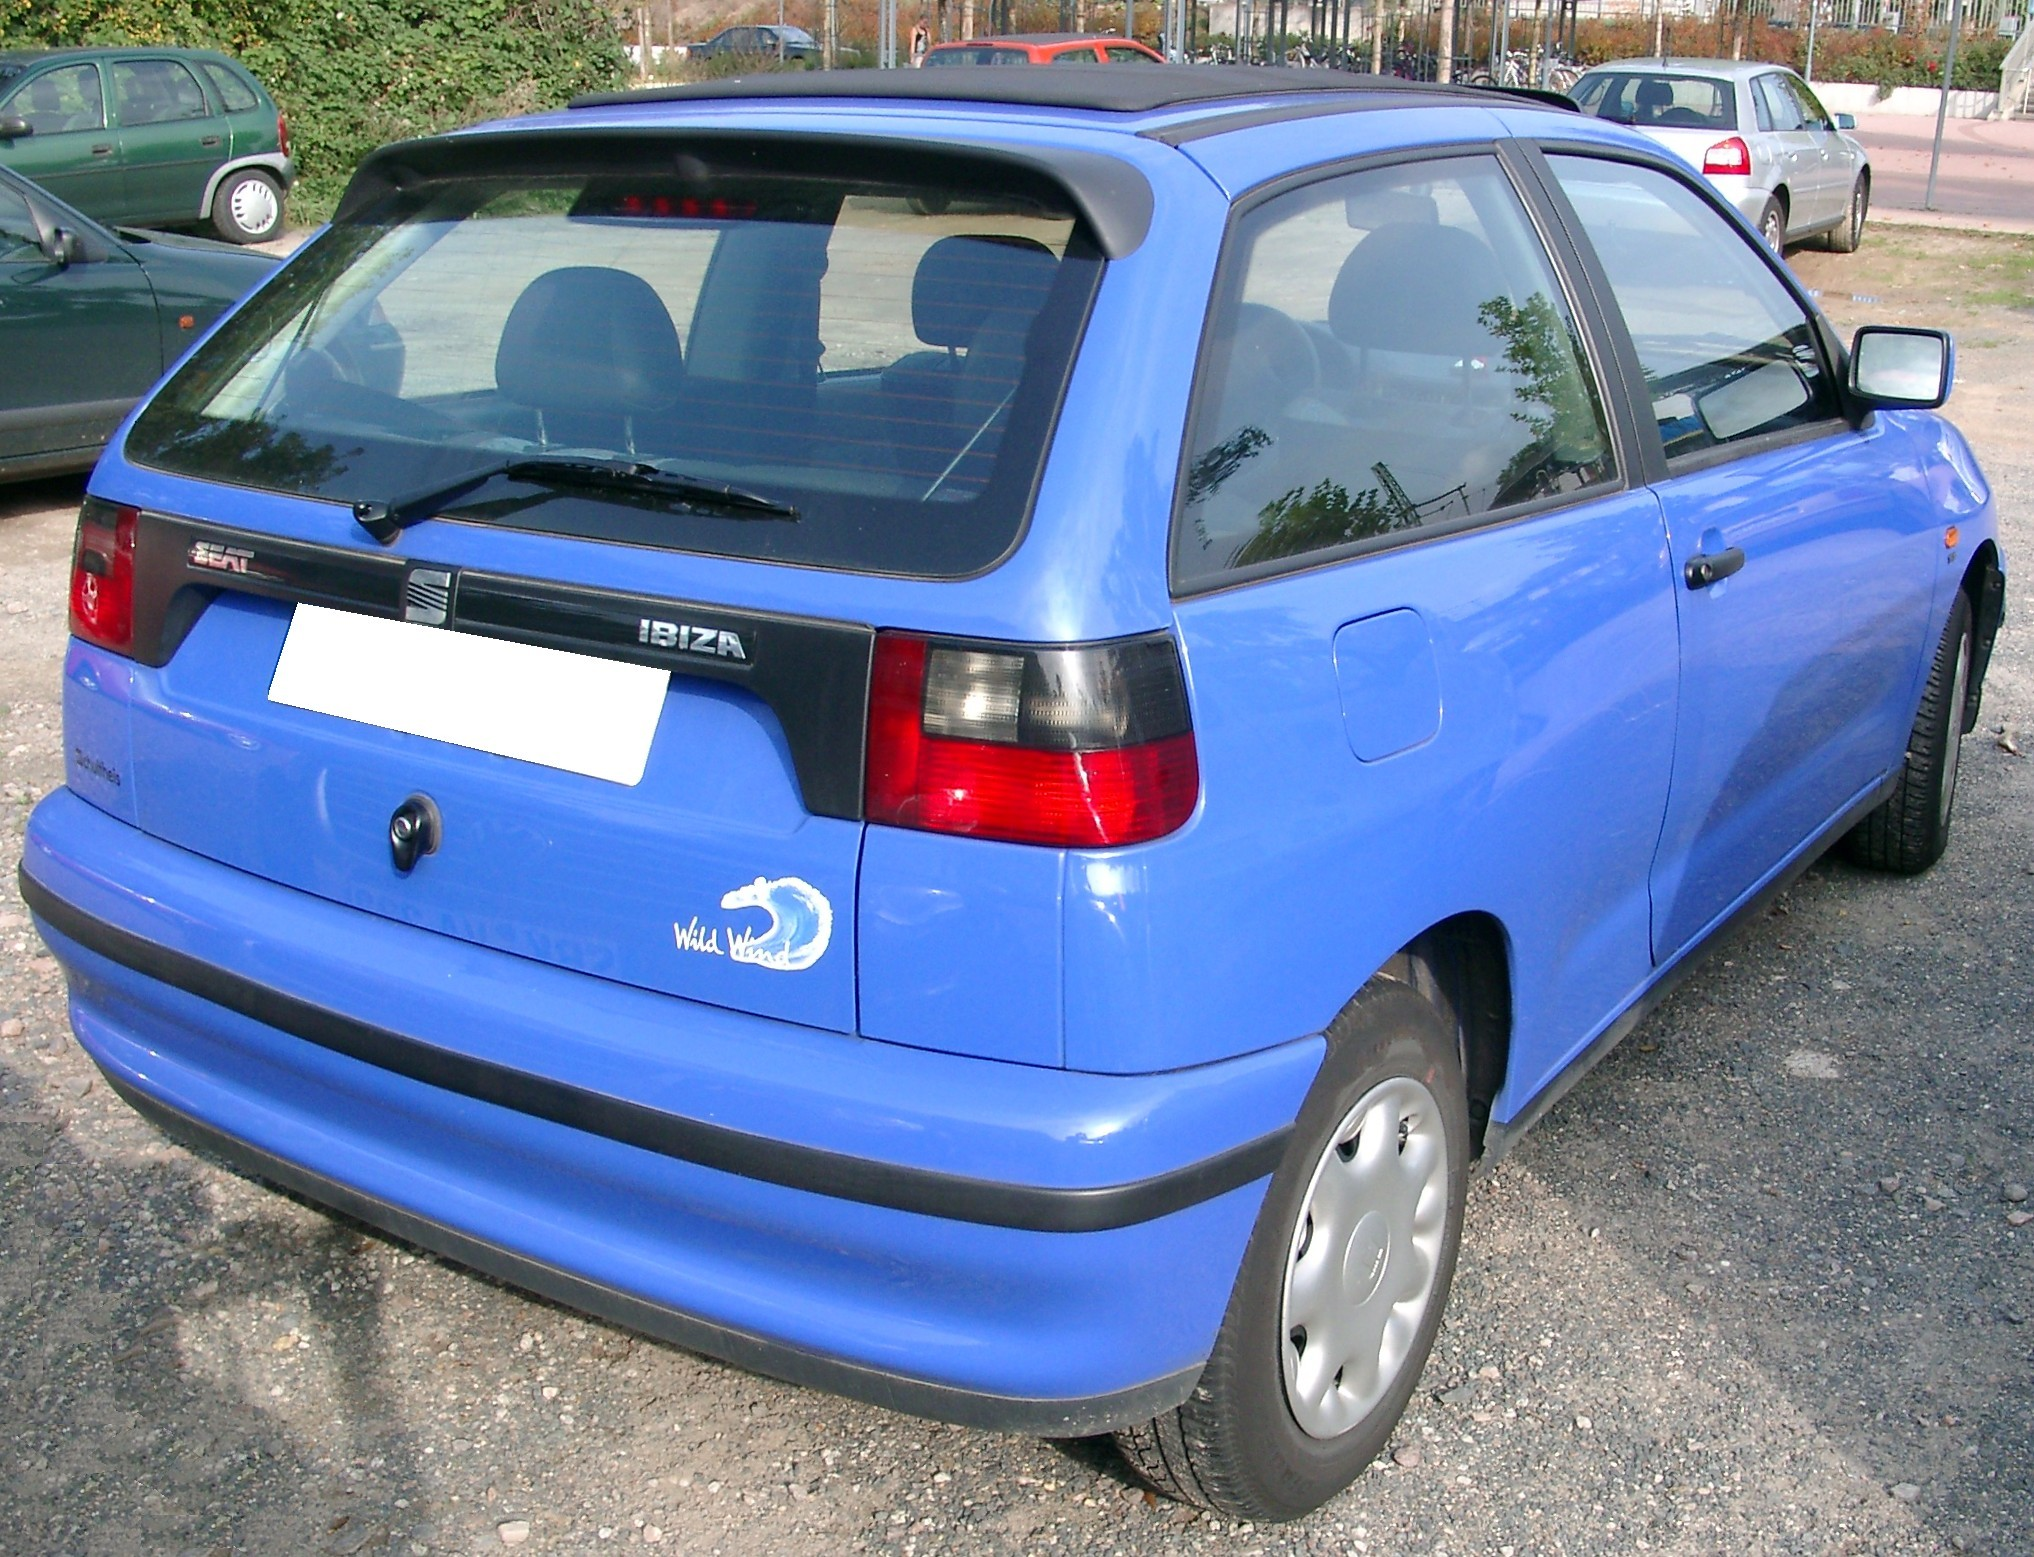 1998 Seat Ibiza ii (6k1) – pictures, information and specs - Auto ...